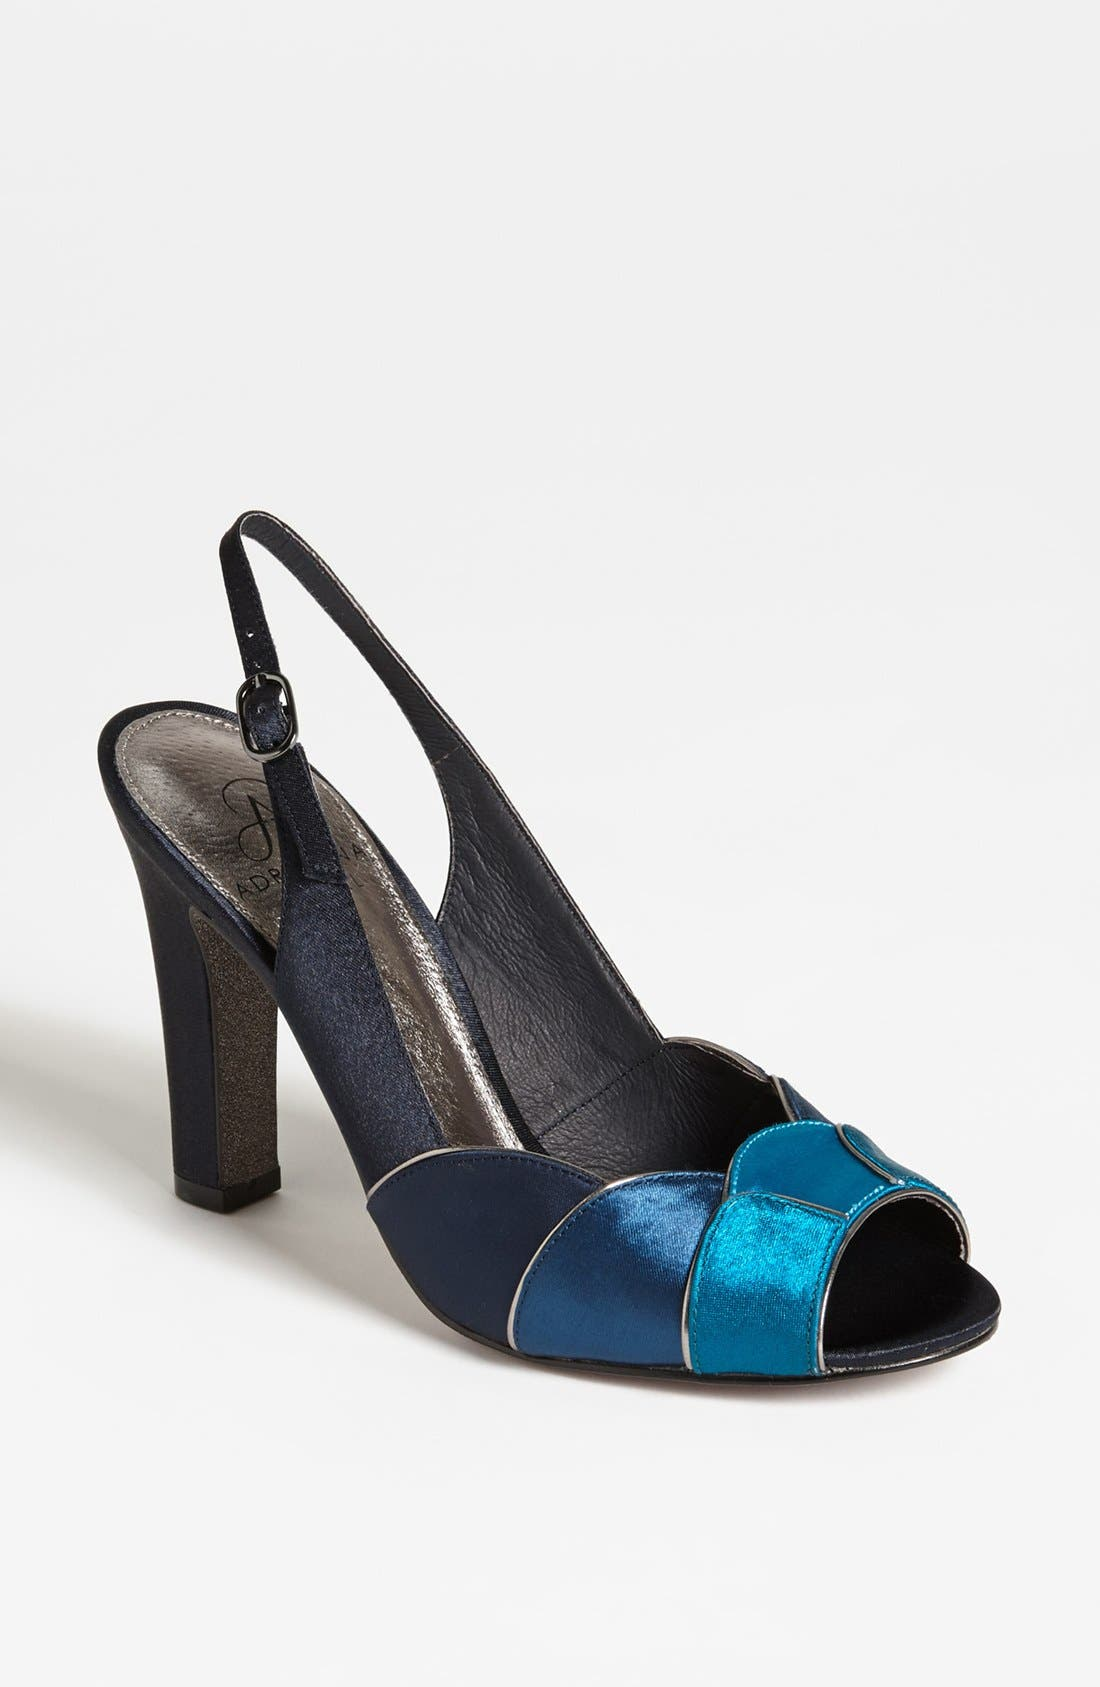 Alternate Image 1 Selected - Adrianna Papell 'Enya' Pump (Online Only)